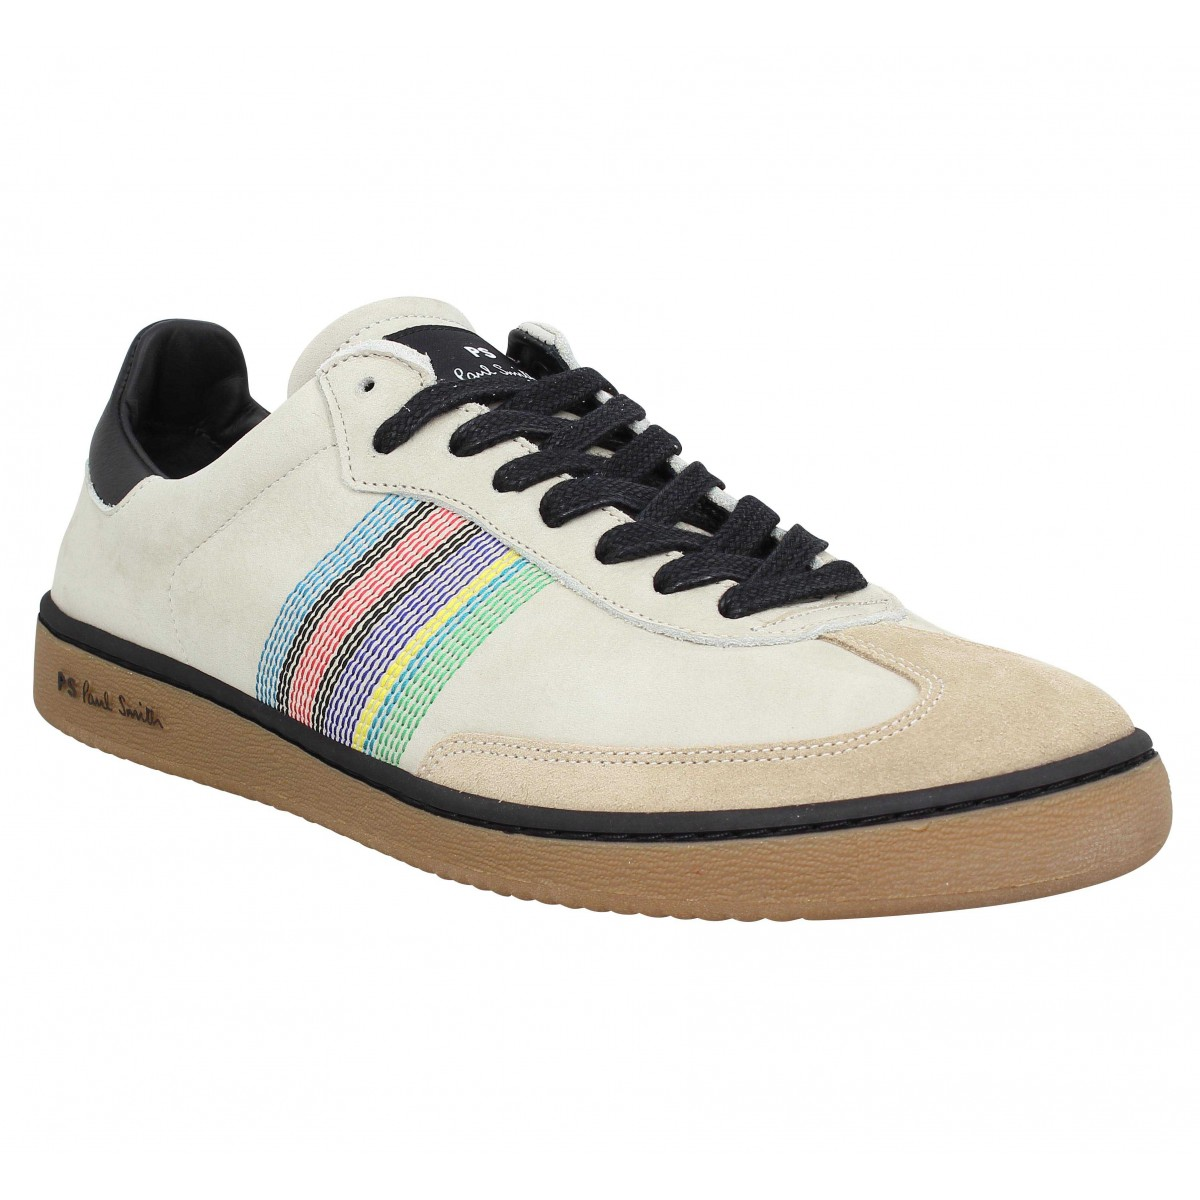 Baskets PAUL SMITH Yuki nubuck Homme Beige